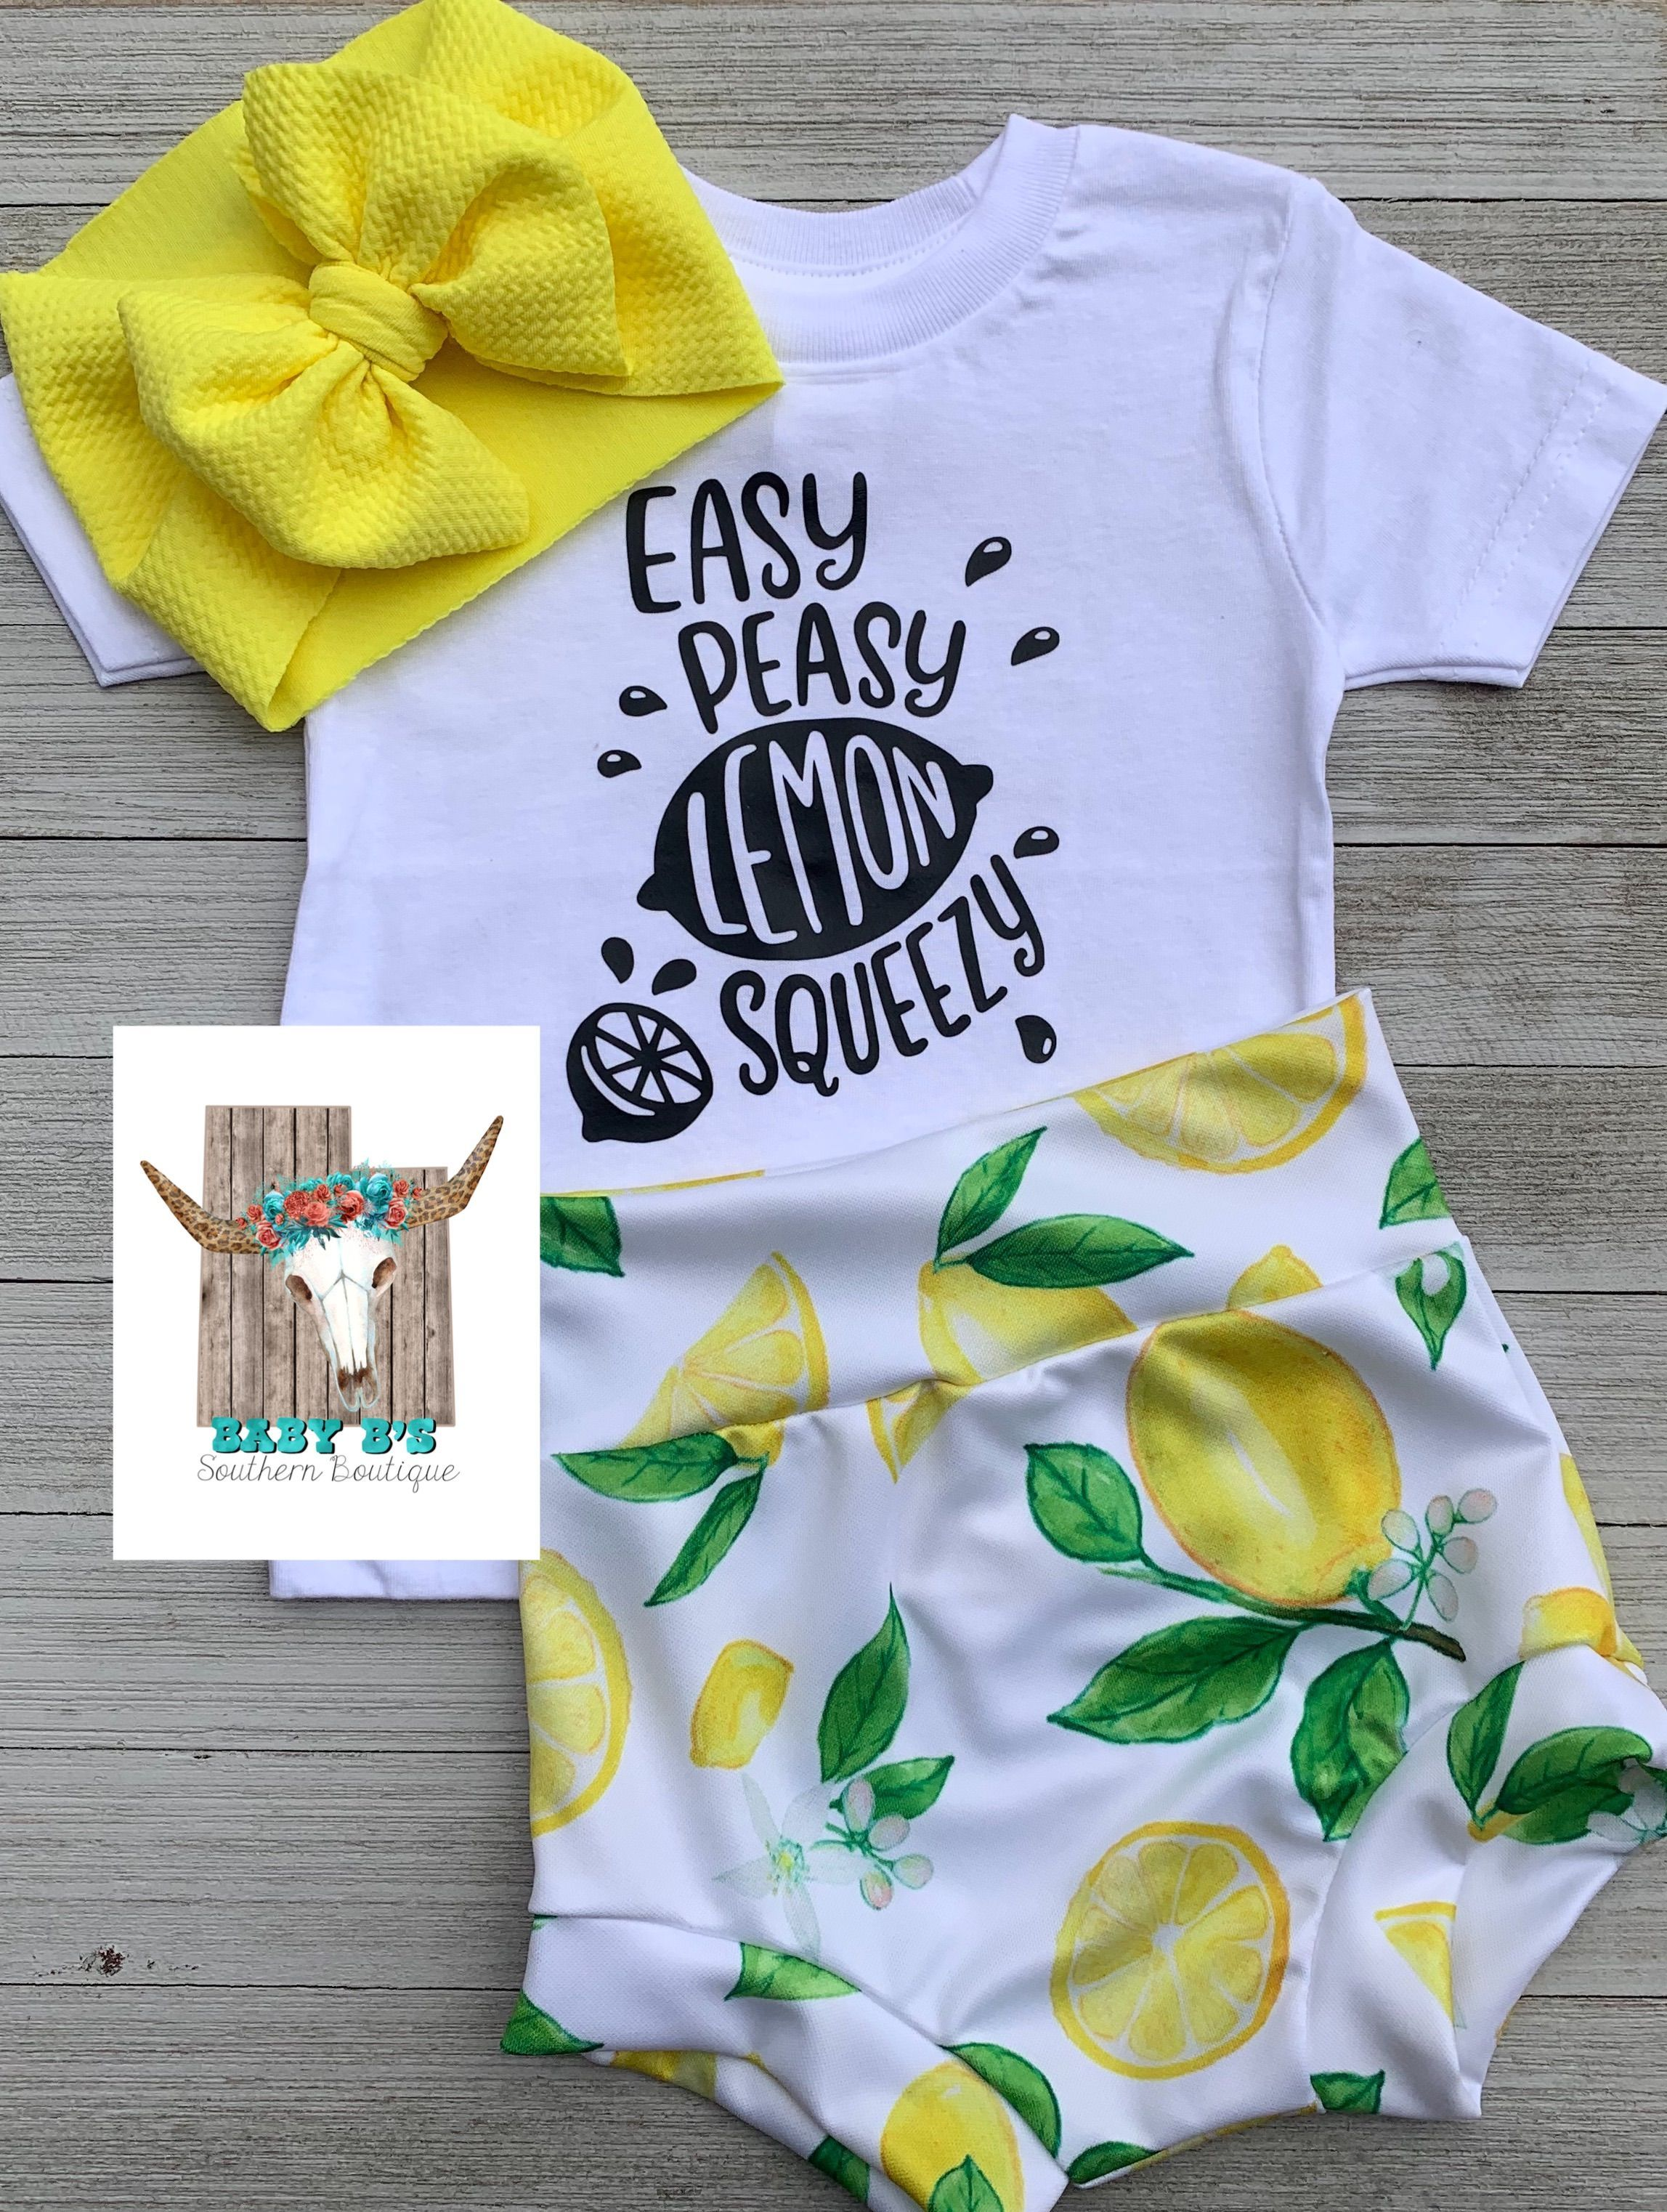 Baby Shorts 6-9 MONTHS Newborn Shorts Baby Girl Hippie Baby Baby Shower Gifts Cotton Shorts Infant Clothes Gifts Under 25